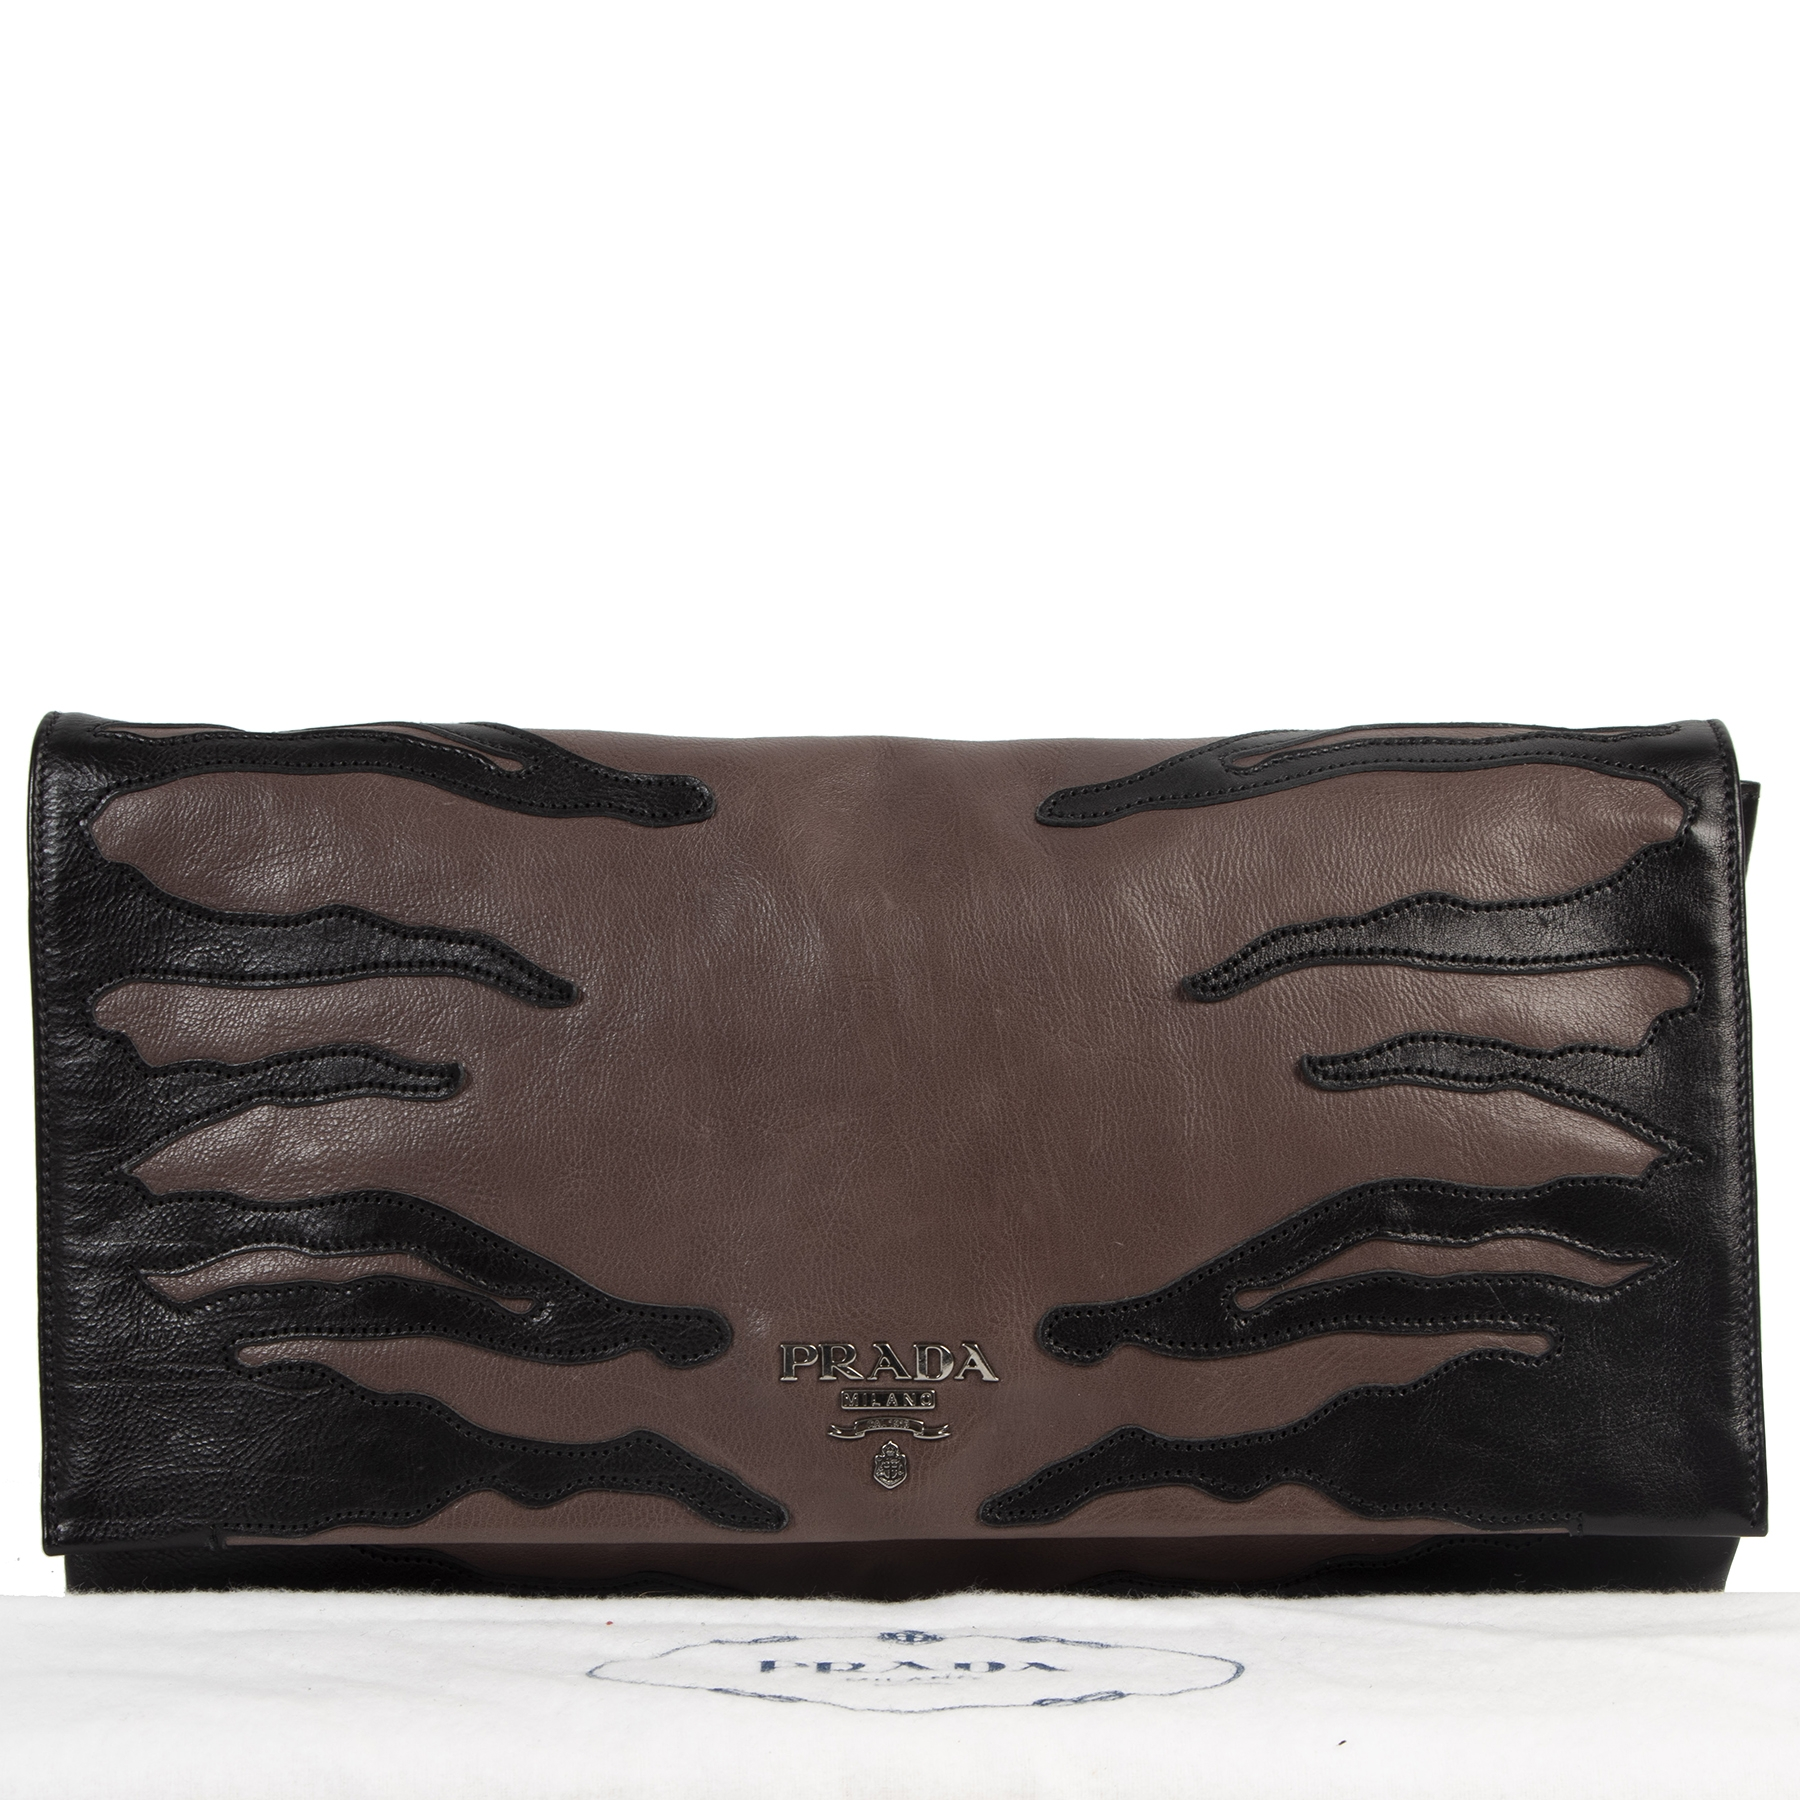 Prada Brown and Black Leather Clutch Bag pour le meilleur prix chez Labellov à Anvers